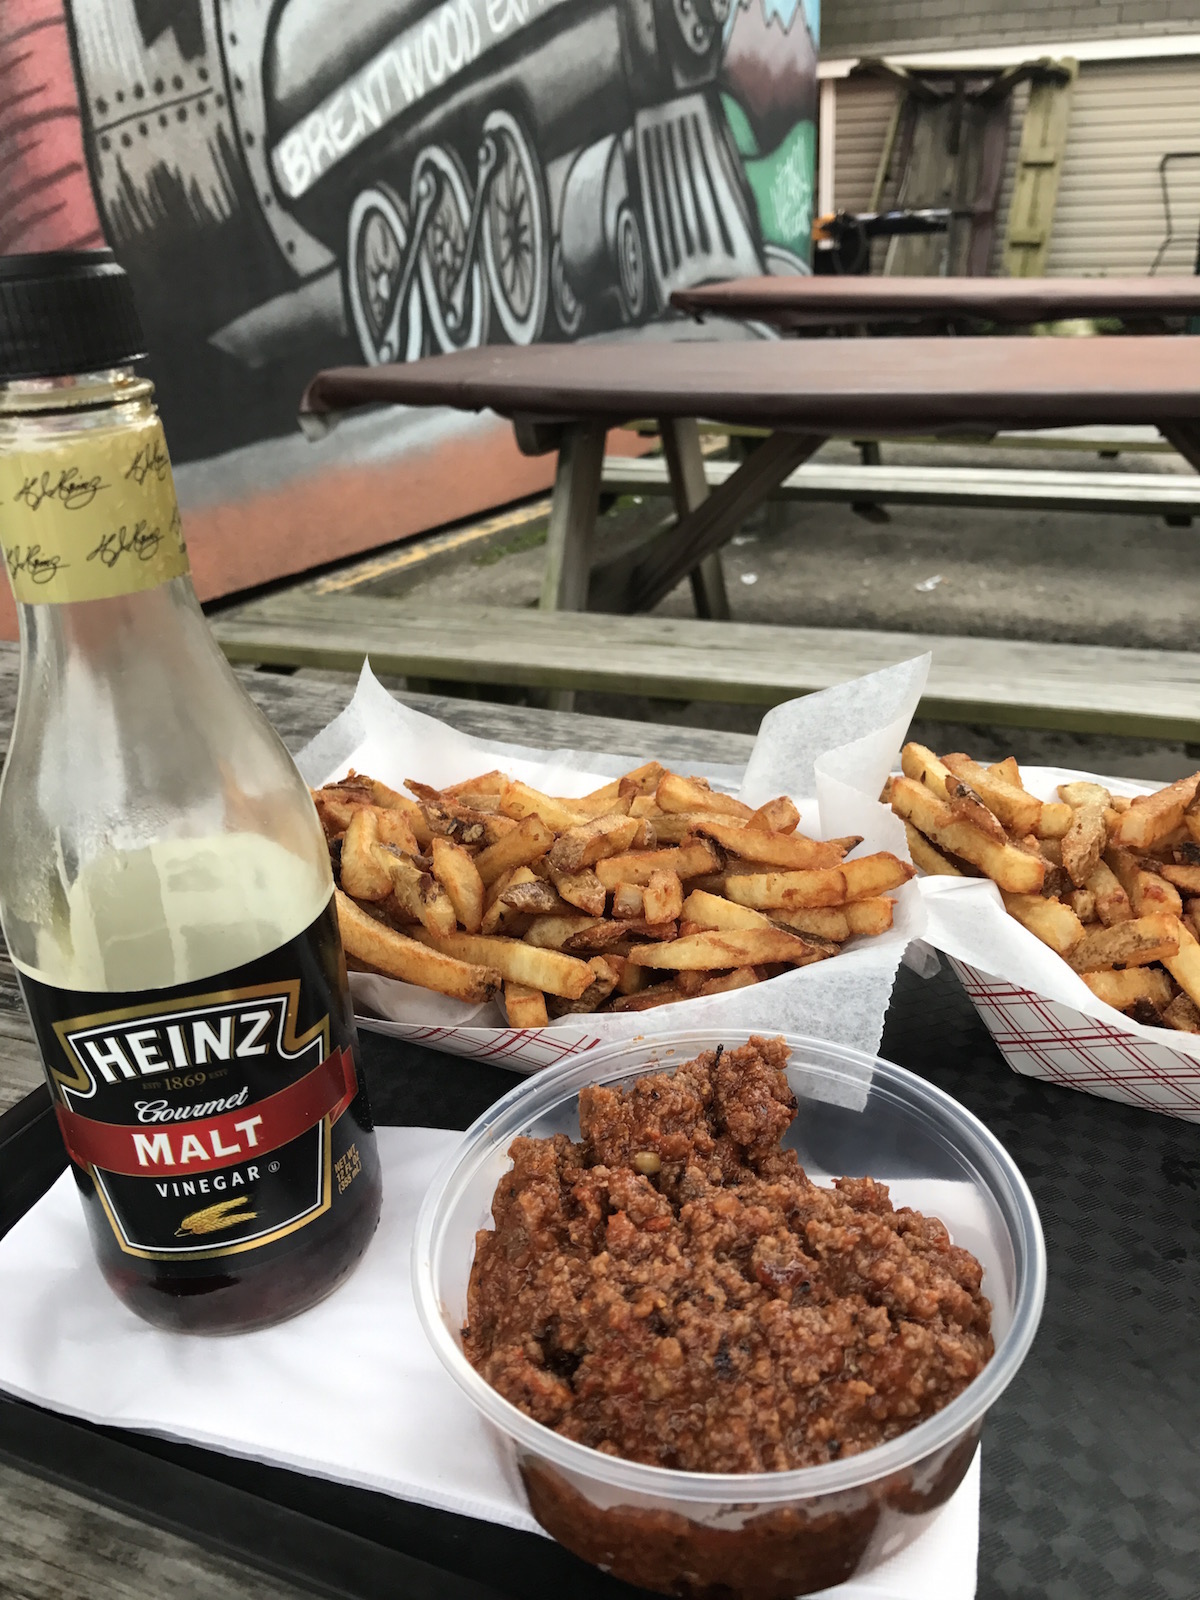 Chili fries and malt vinegar at Rowdy BBQ in the South Hills